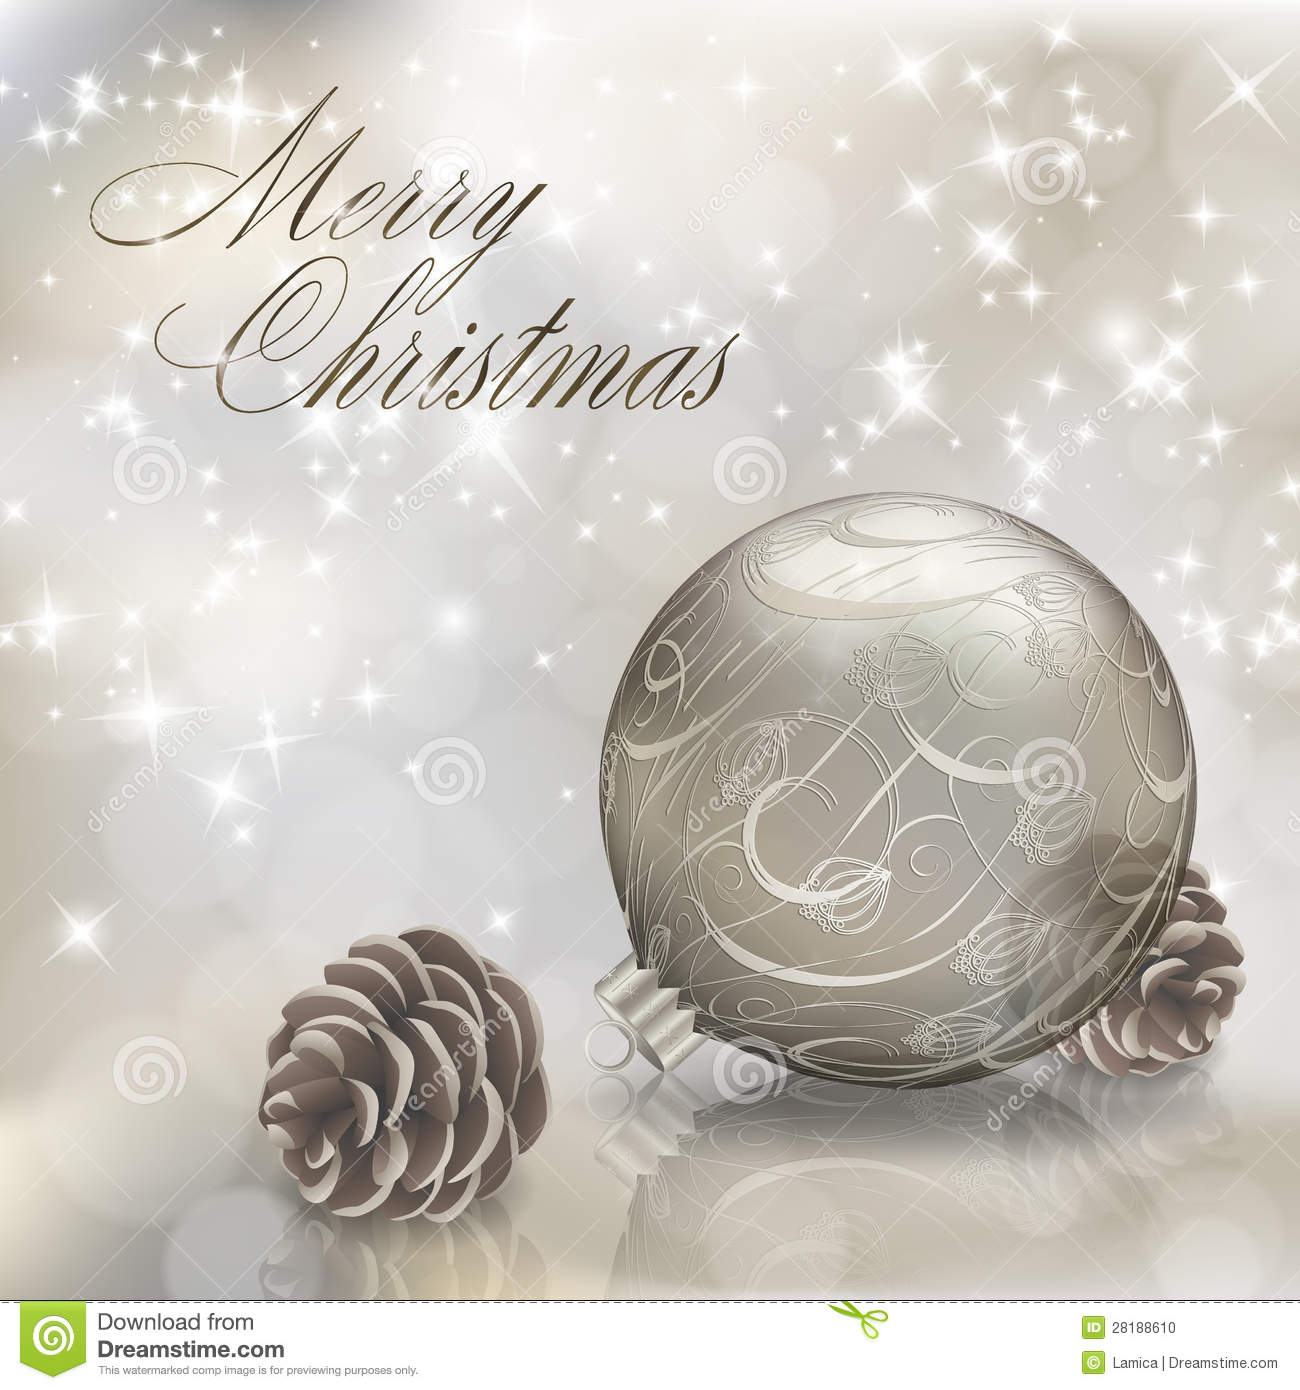 Silver Merry Christmas greeting card